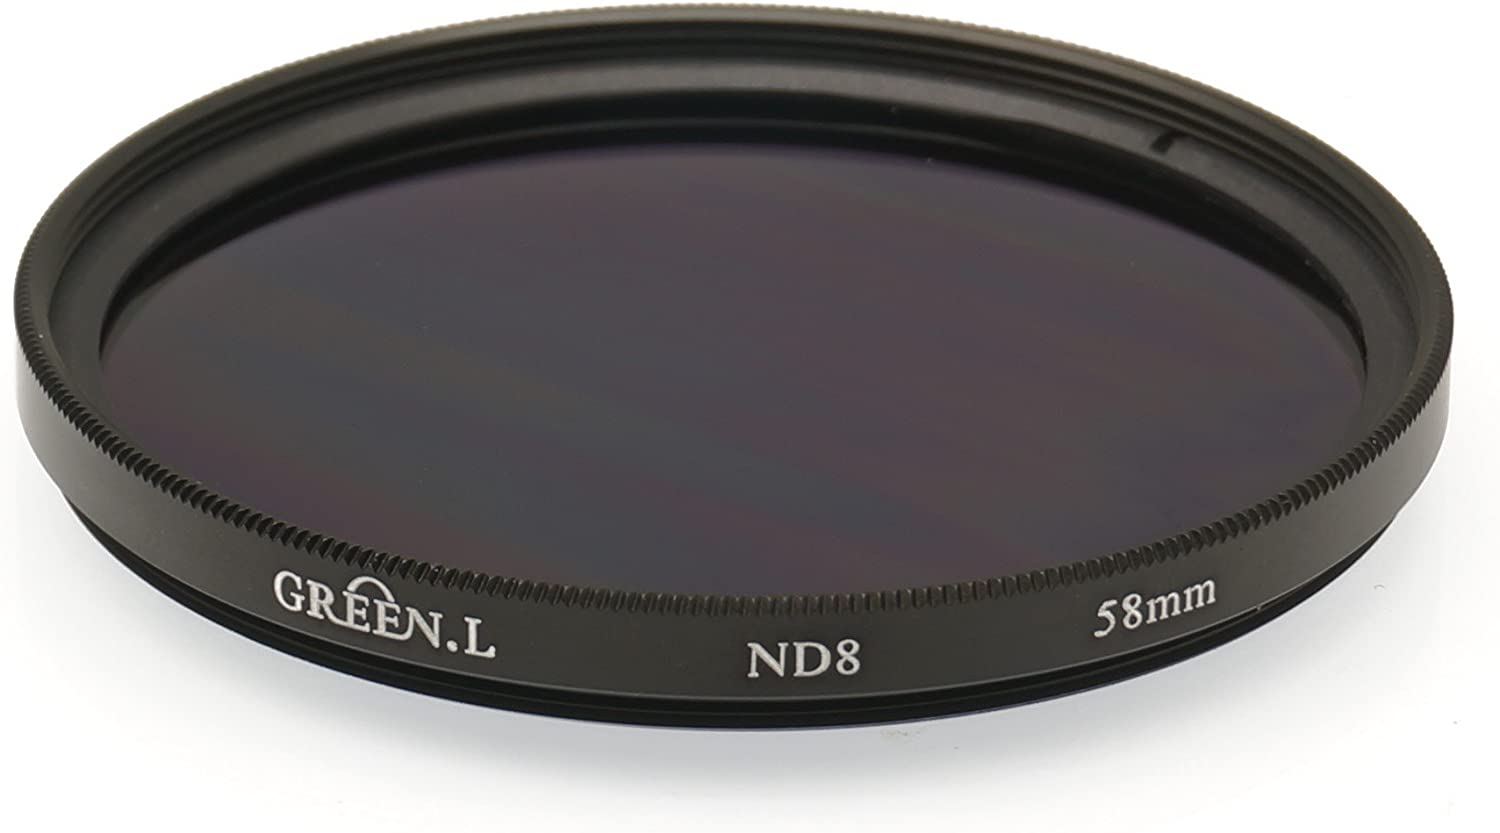 Green L 58mm Neutral Density ND8 Filter for Fujifilm XC 50-230mm F4.5-6.7 OIS II F4.5-6.7 OIS